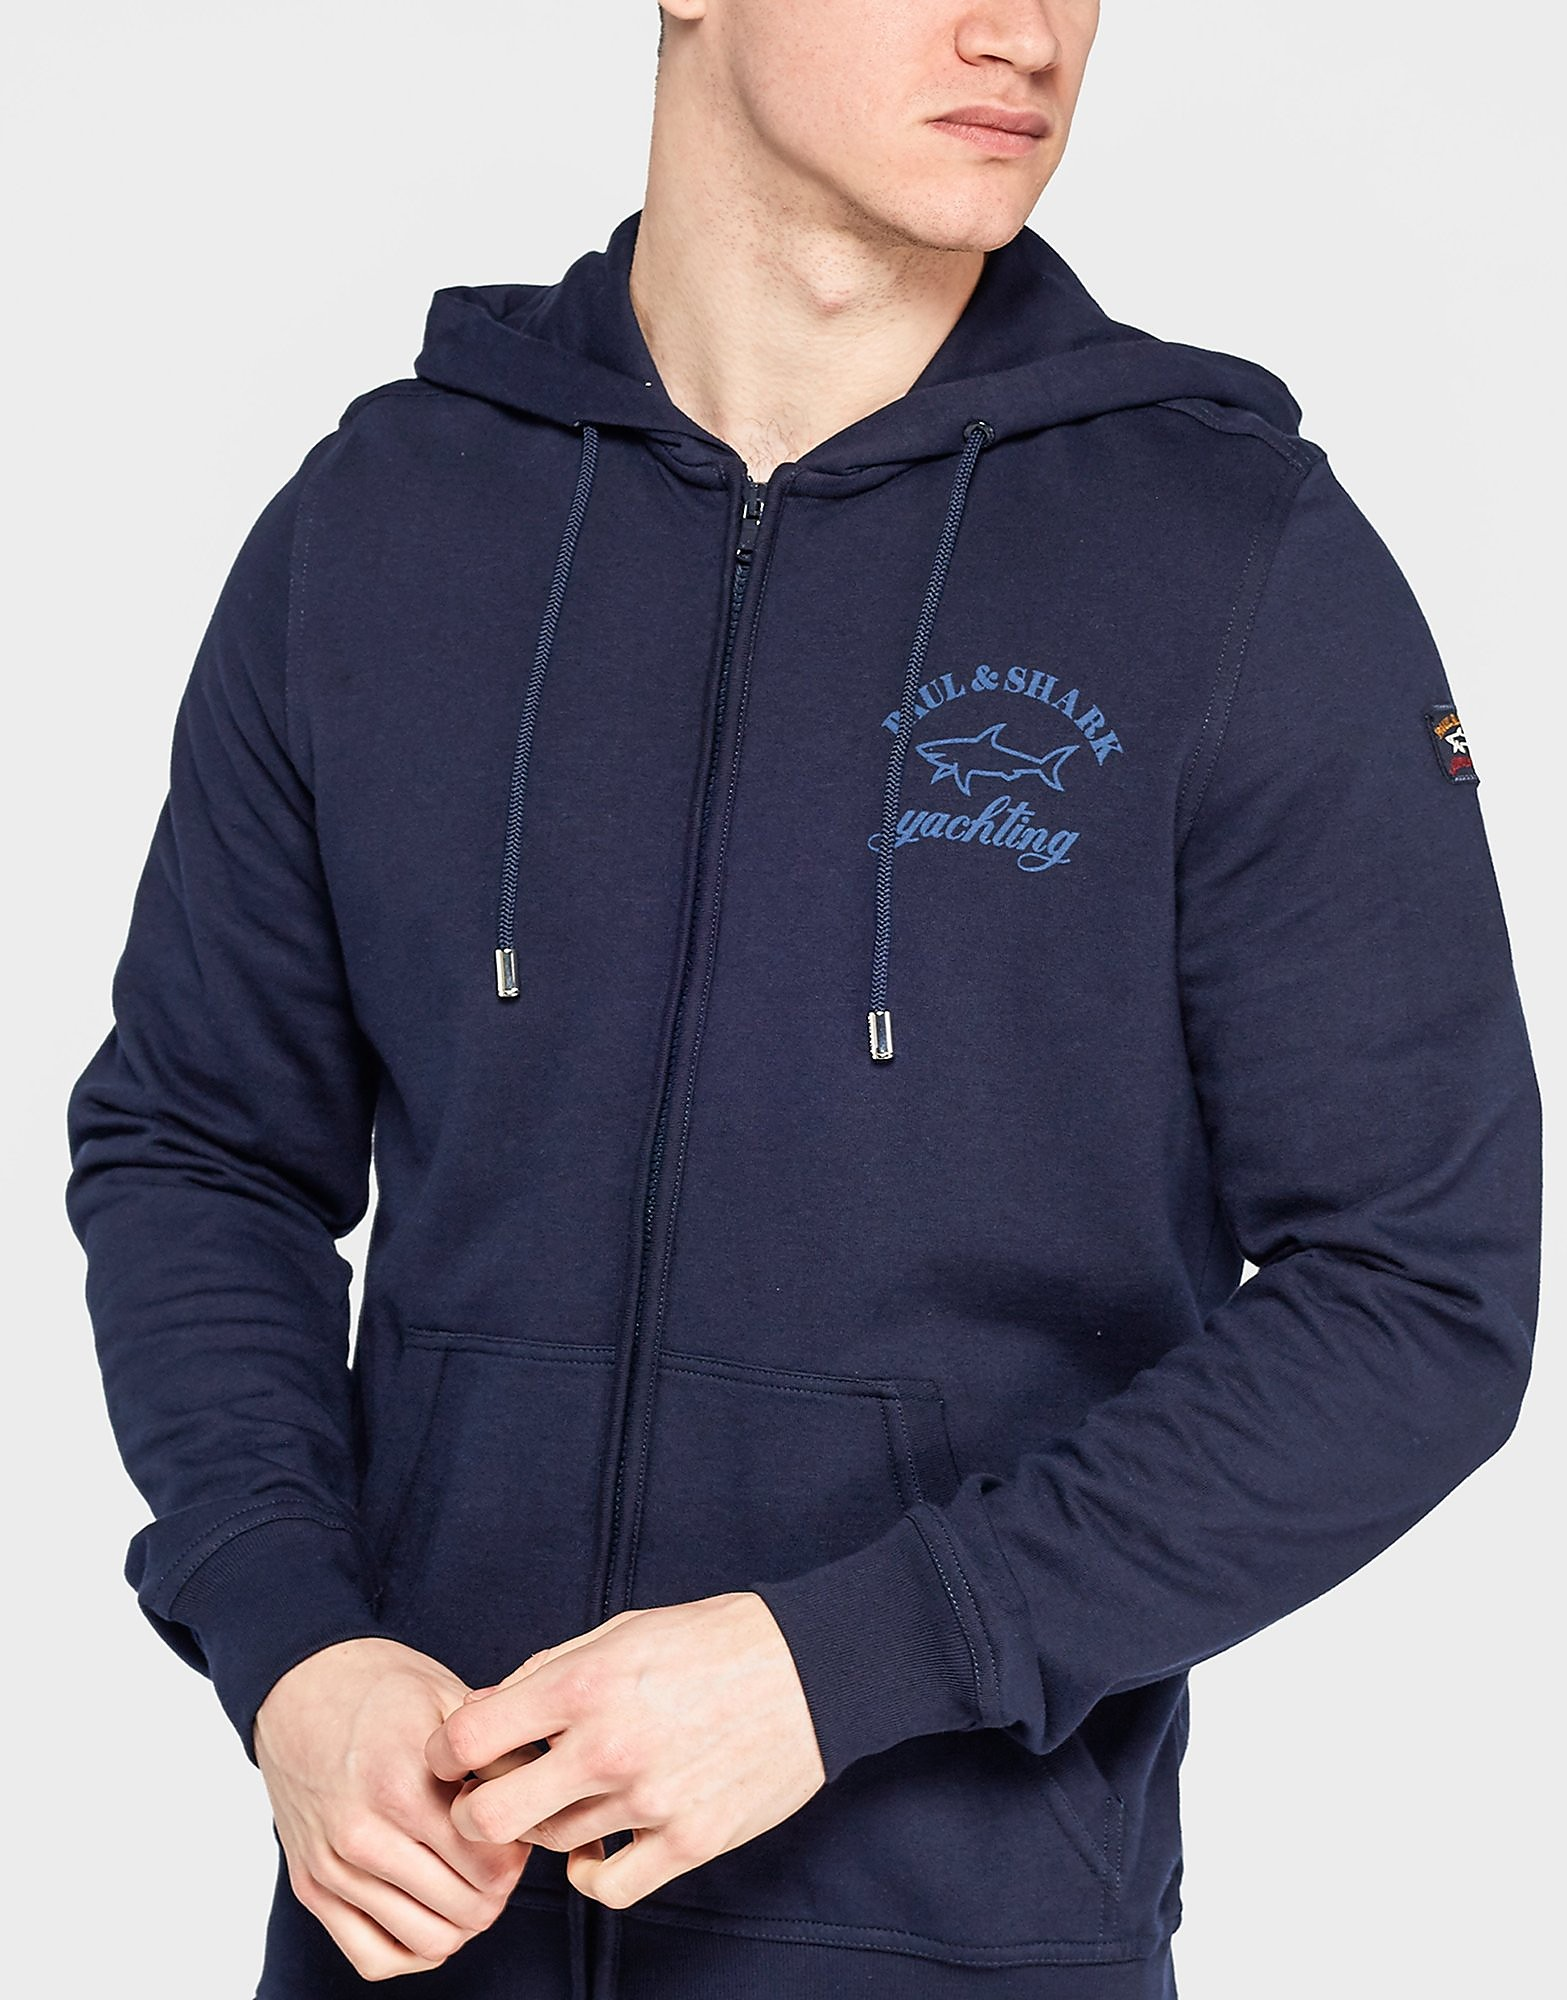 Paul and Shark Full Zip Hoody